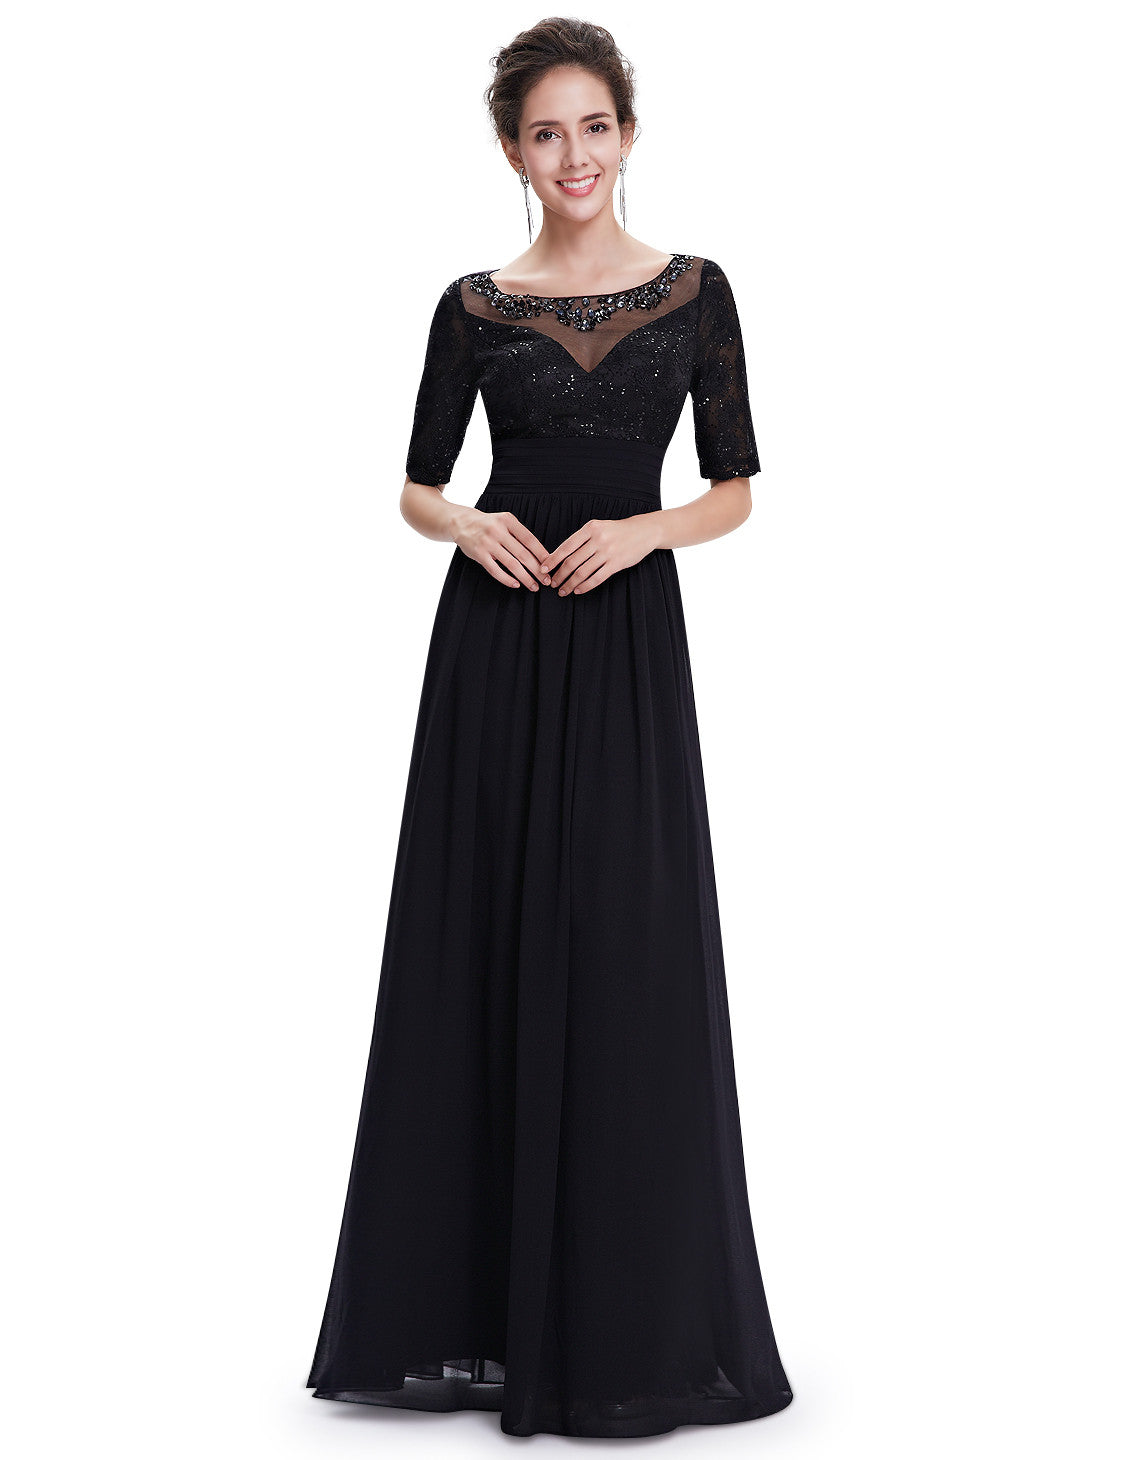 Elegant Long Black Evening Sleeved Dress